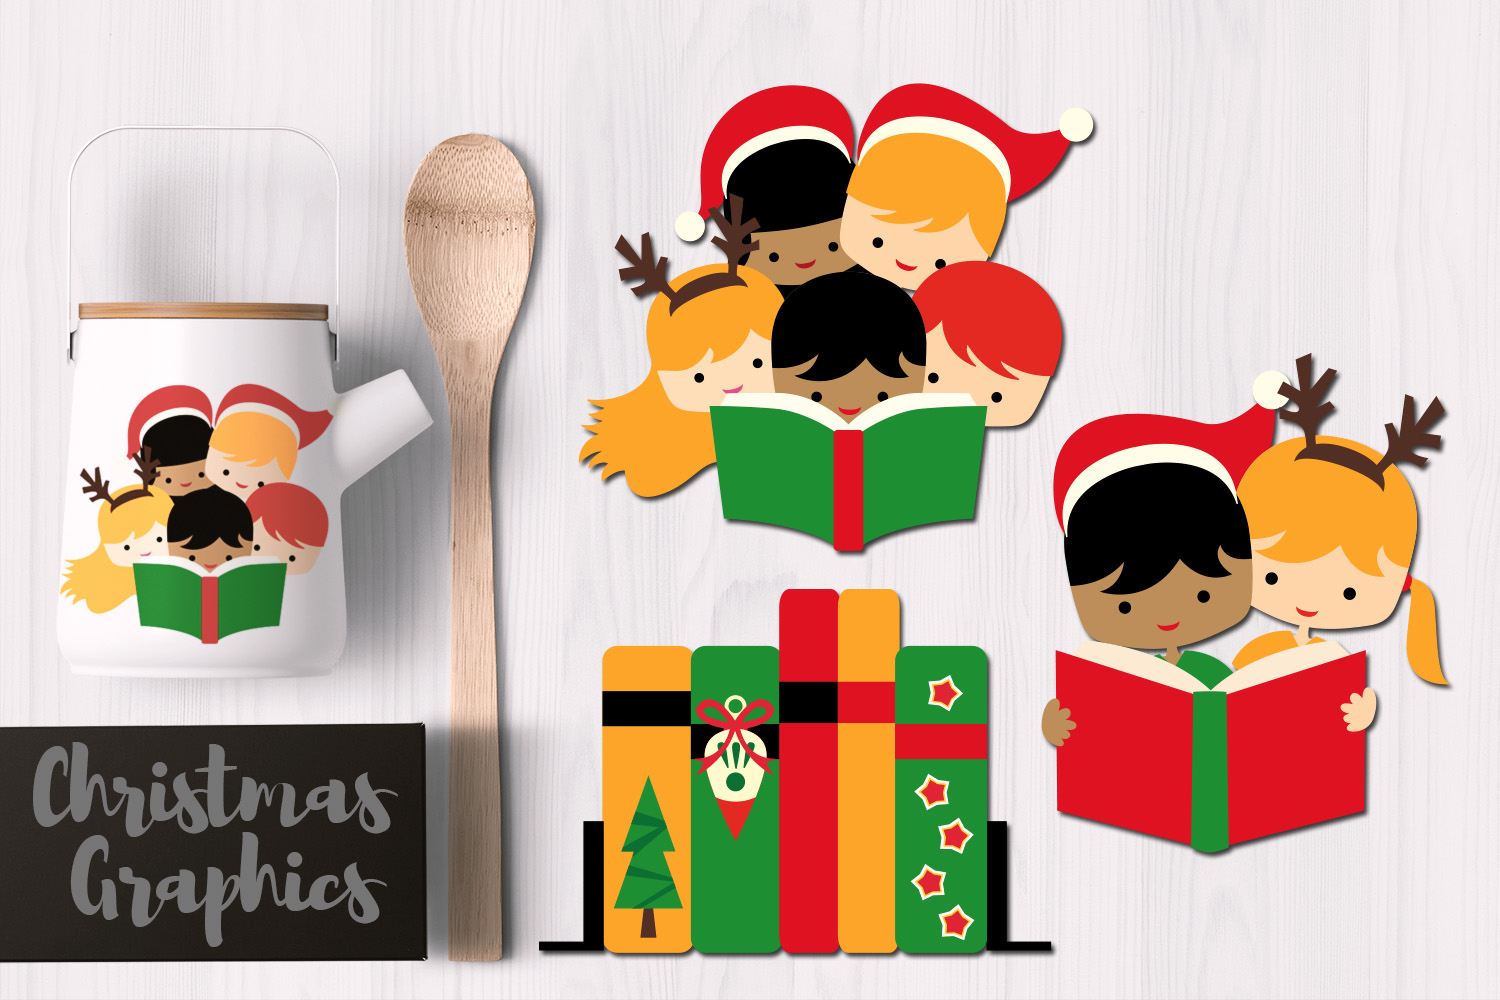 Download Free Christmas Reading Graphic By Revidevi Creative Fabrica for Cricut Explore, Silhouette and other cutting machines.